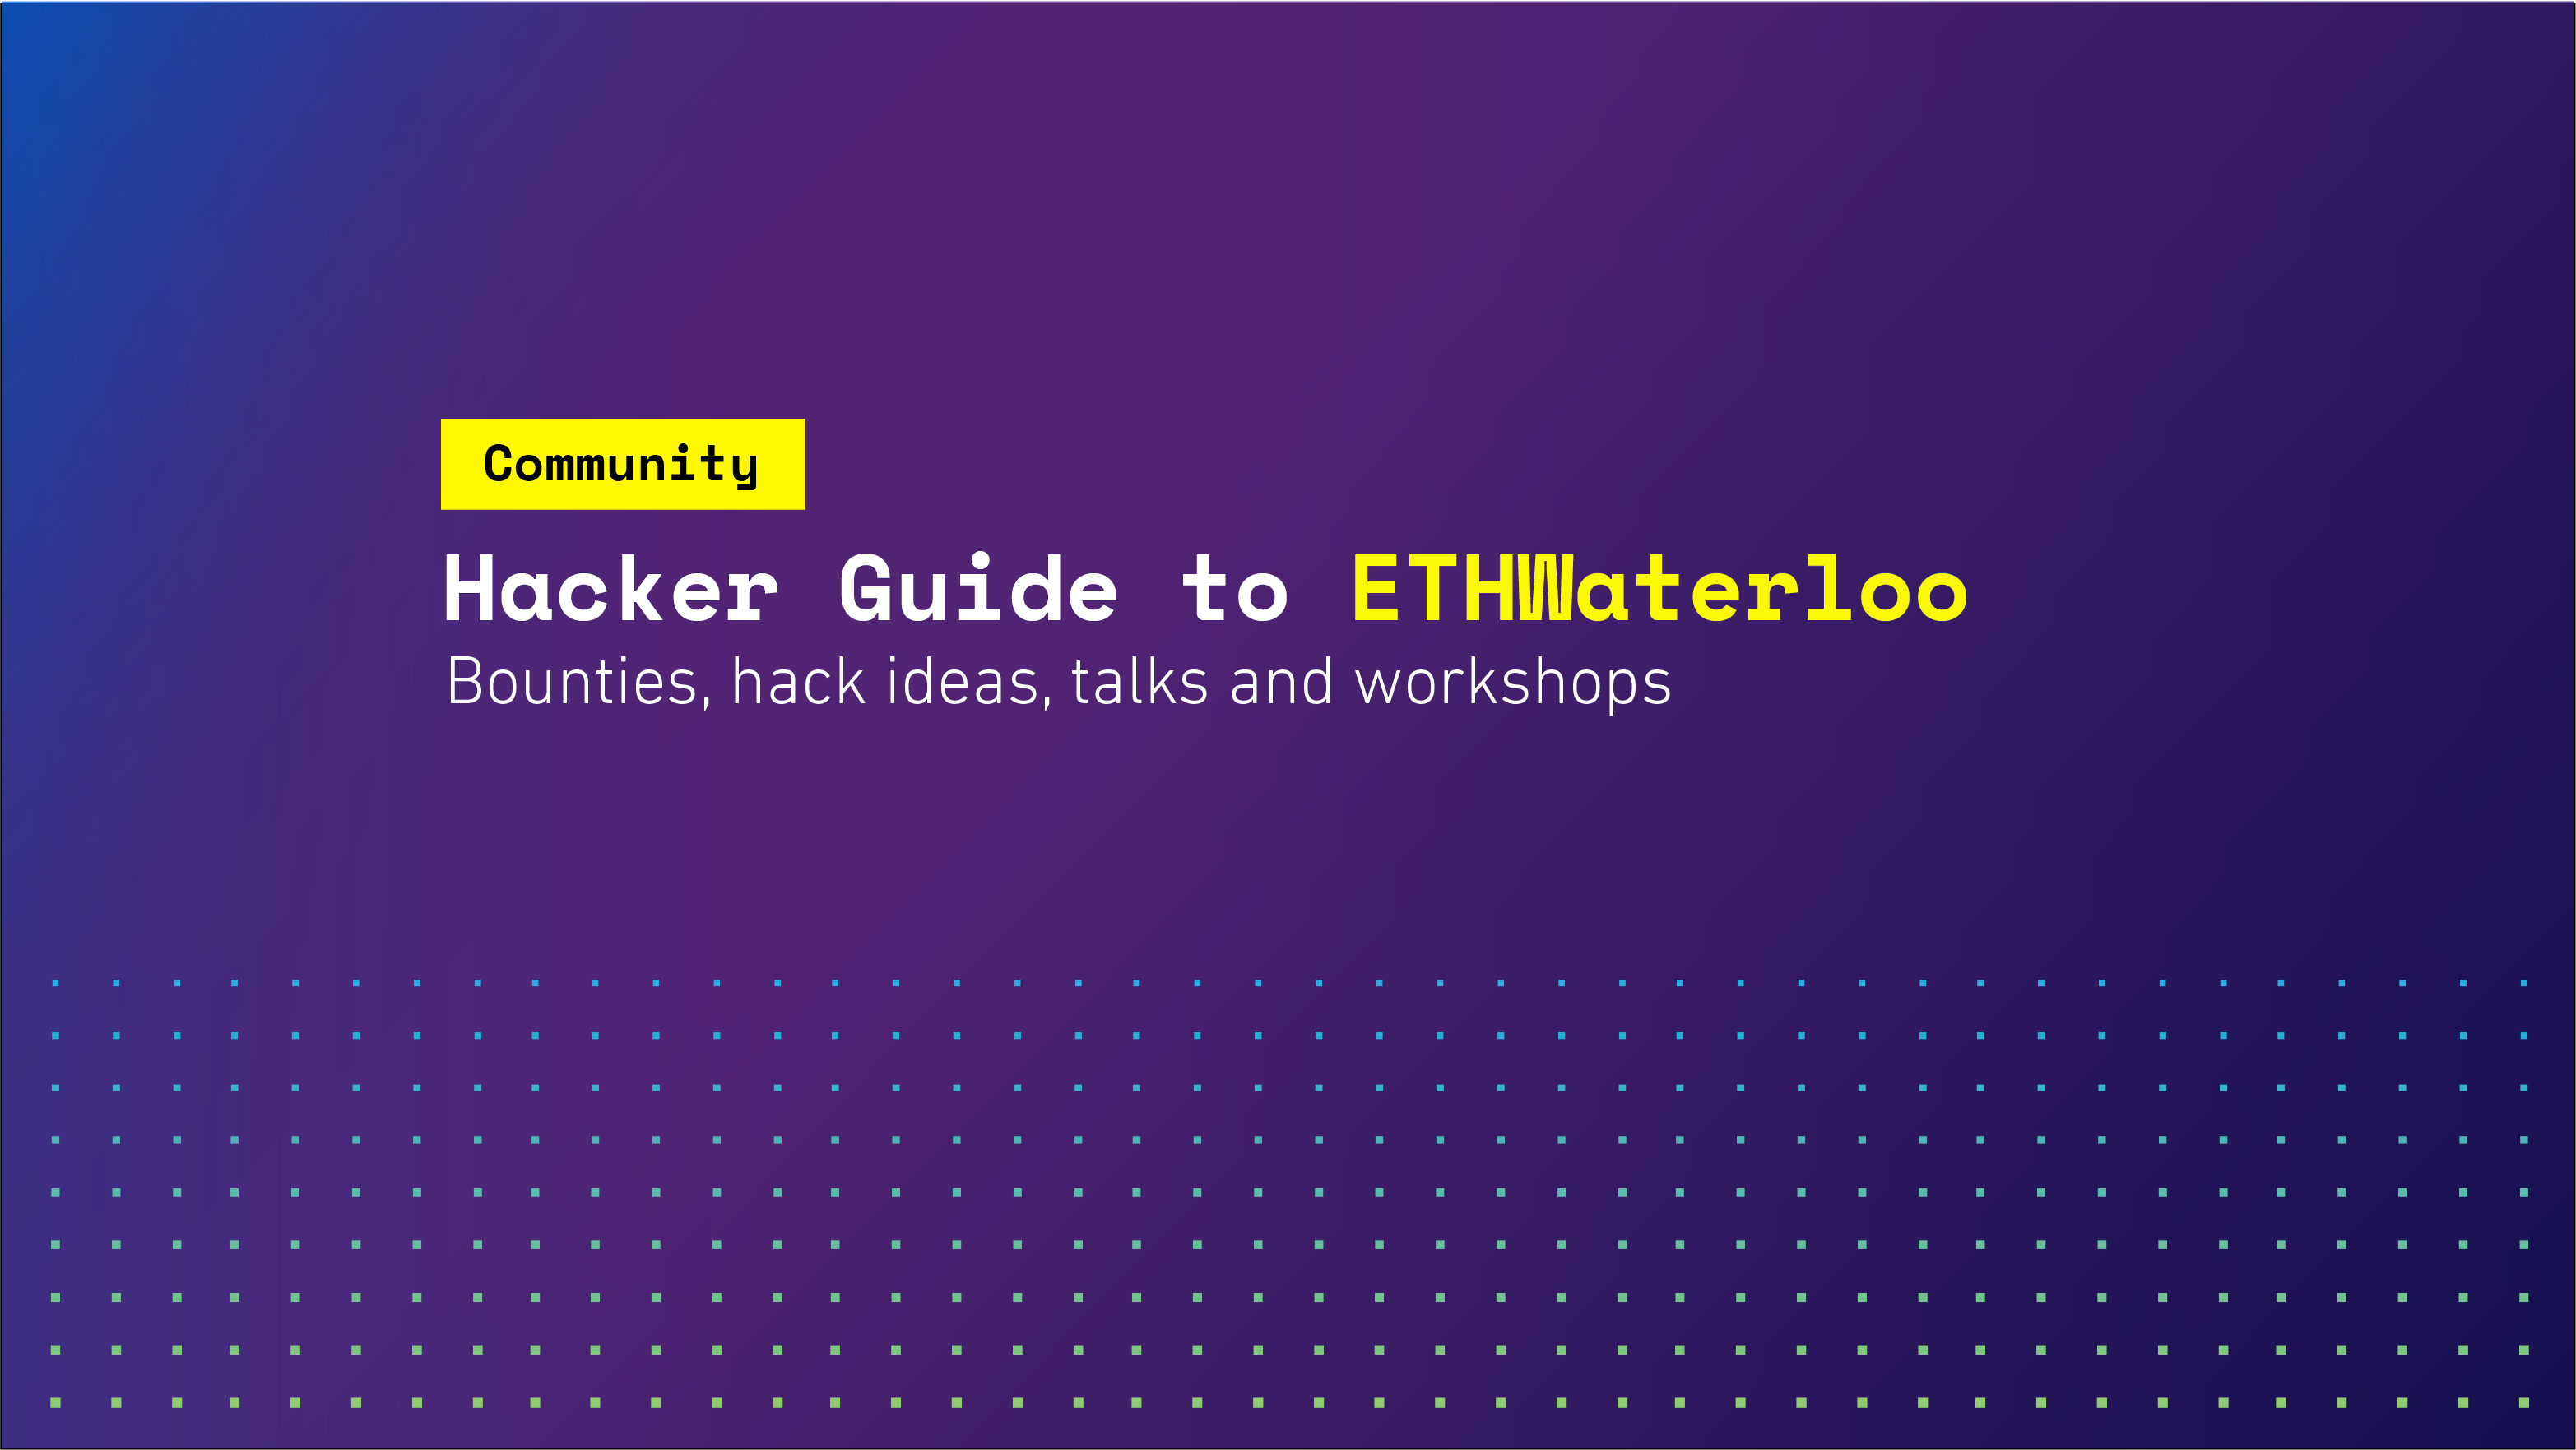 Hacker Guide to ETHWaterloo